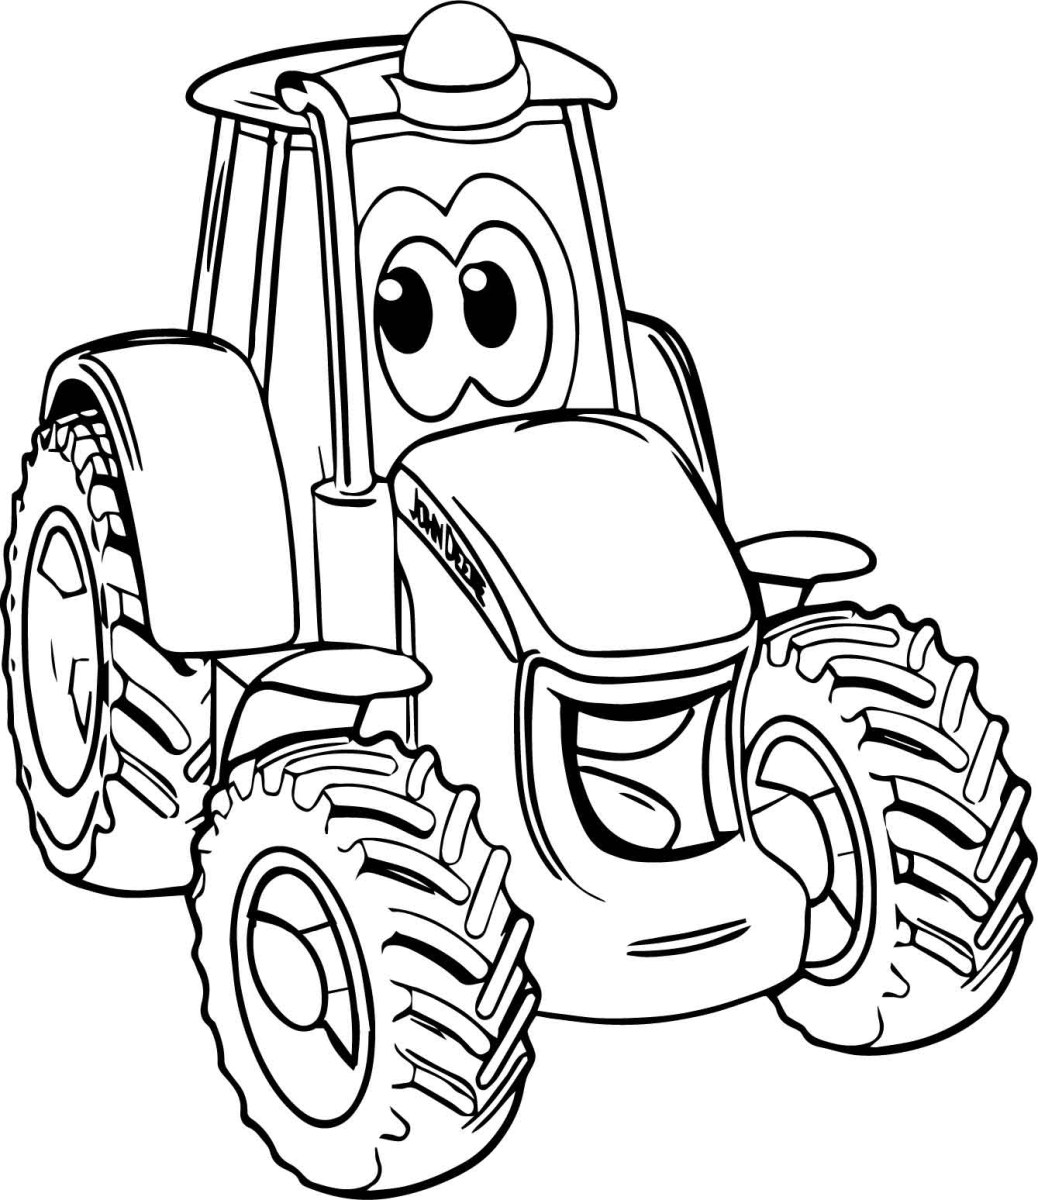 Tractor Coloring Page Smile John Deere Tractor Coloring Page Wecoloringpage Birijus Com